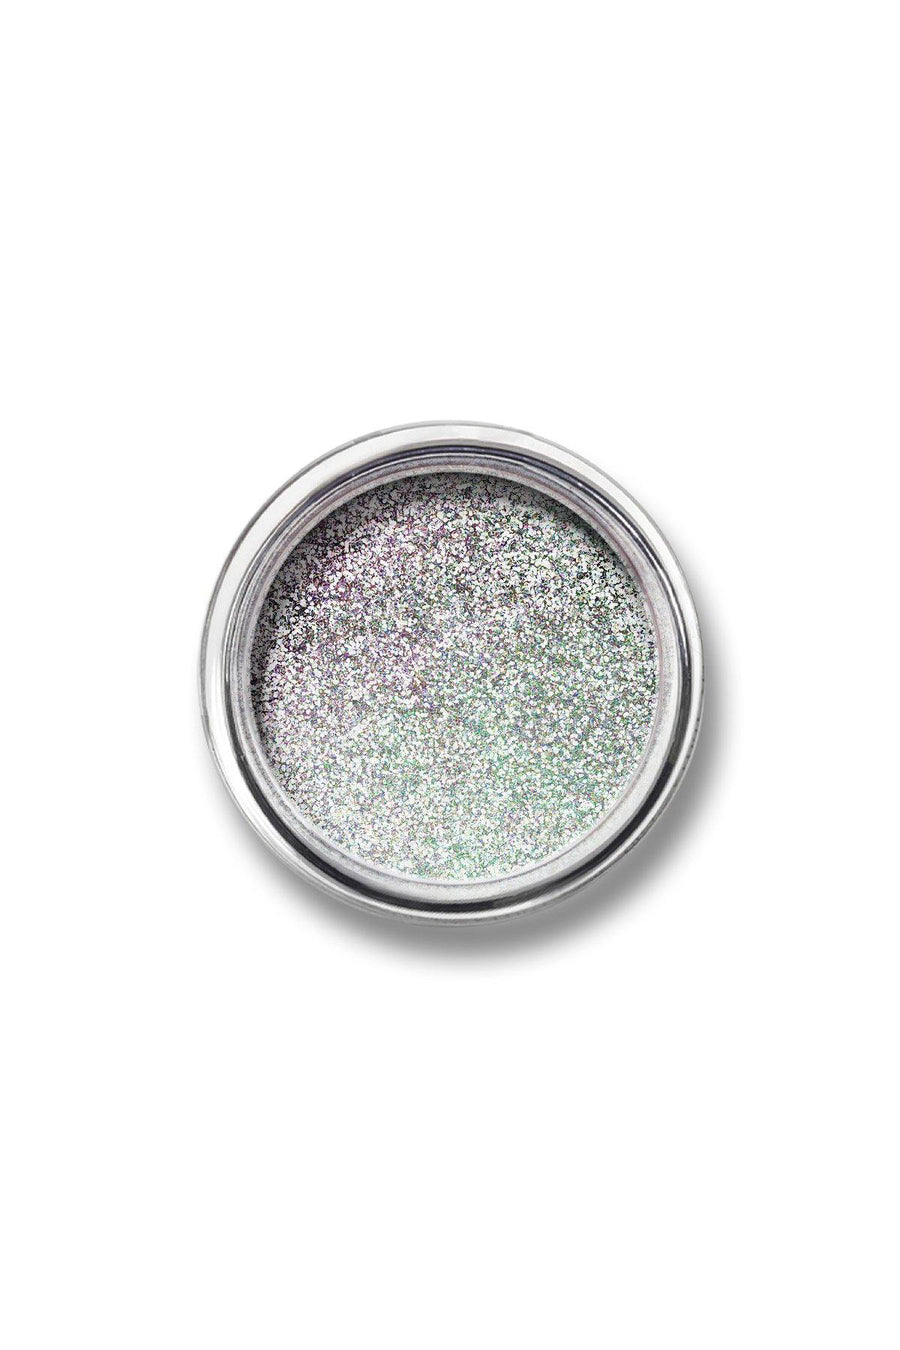 Glitter Powder #9 - White Holo